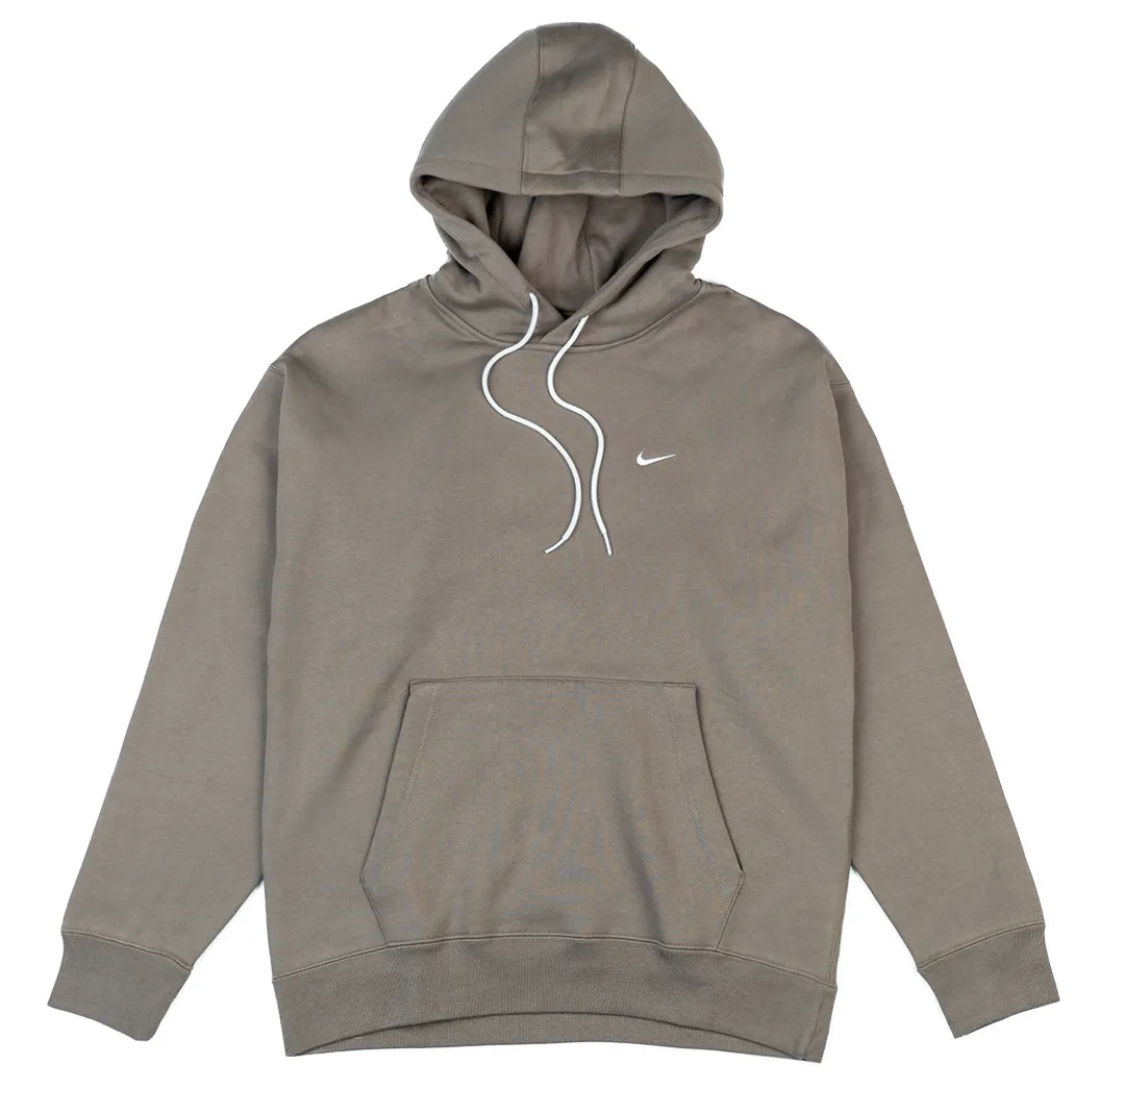 Nike Lab Special Project Hoodie